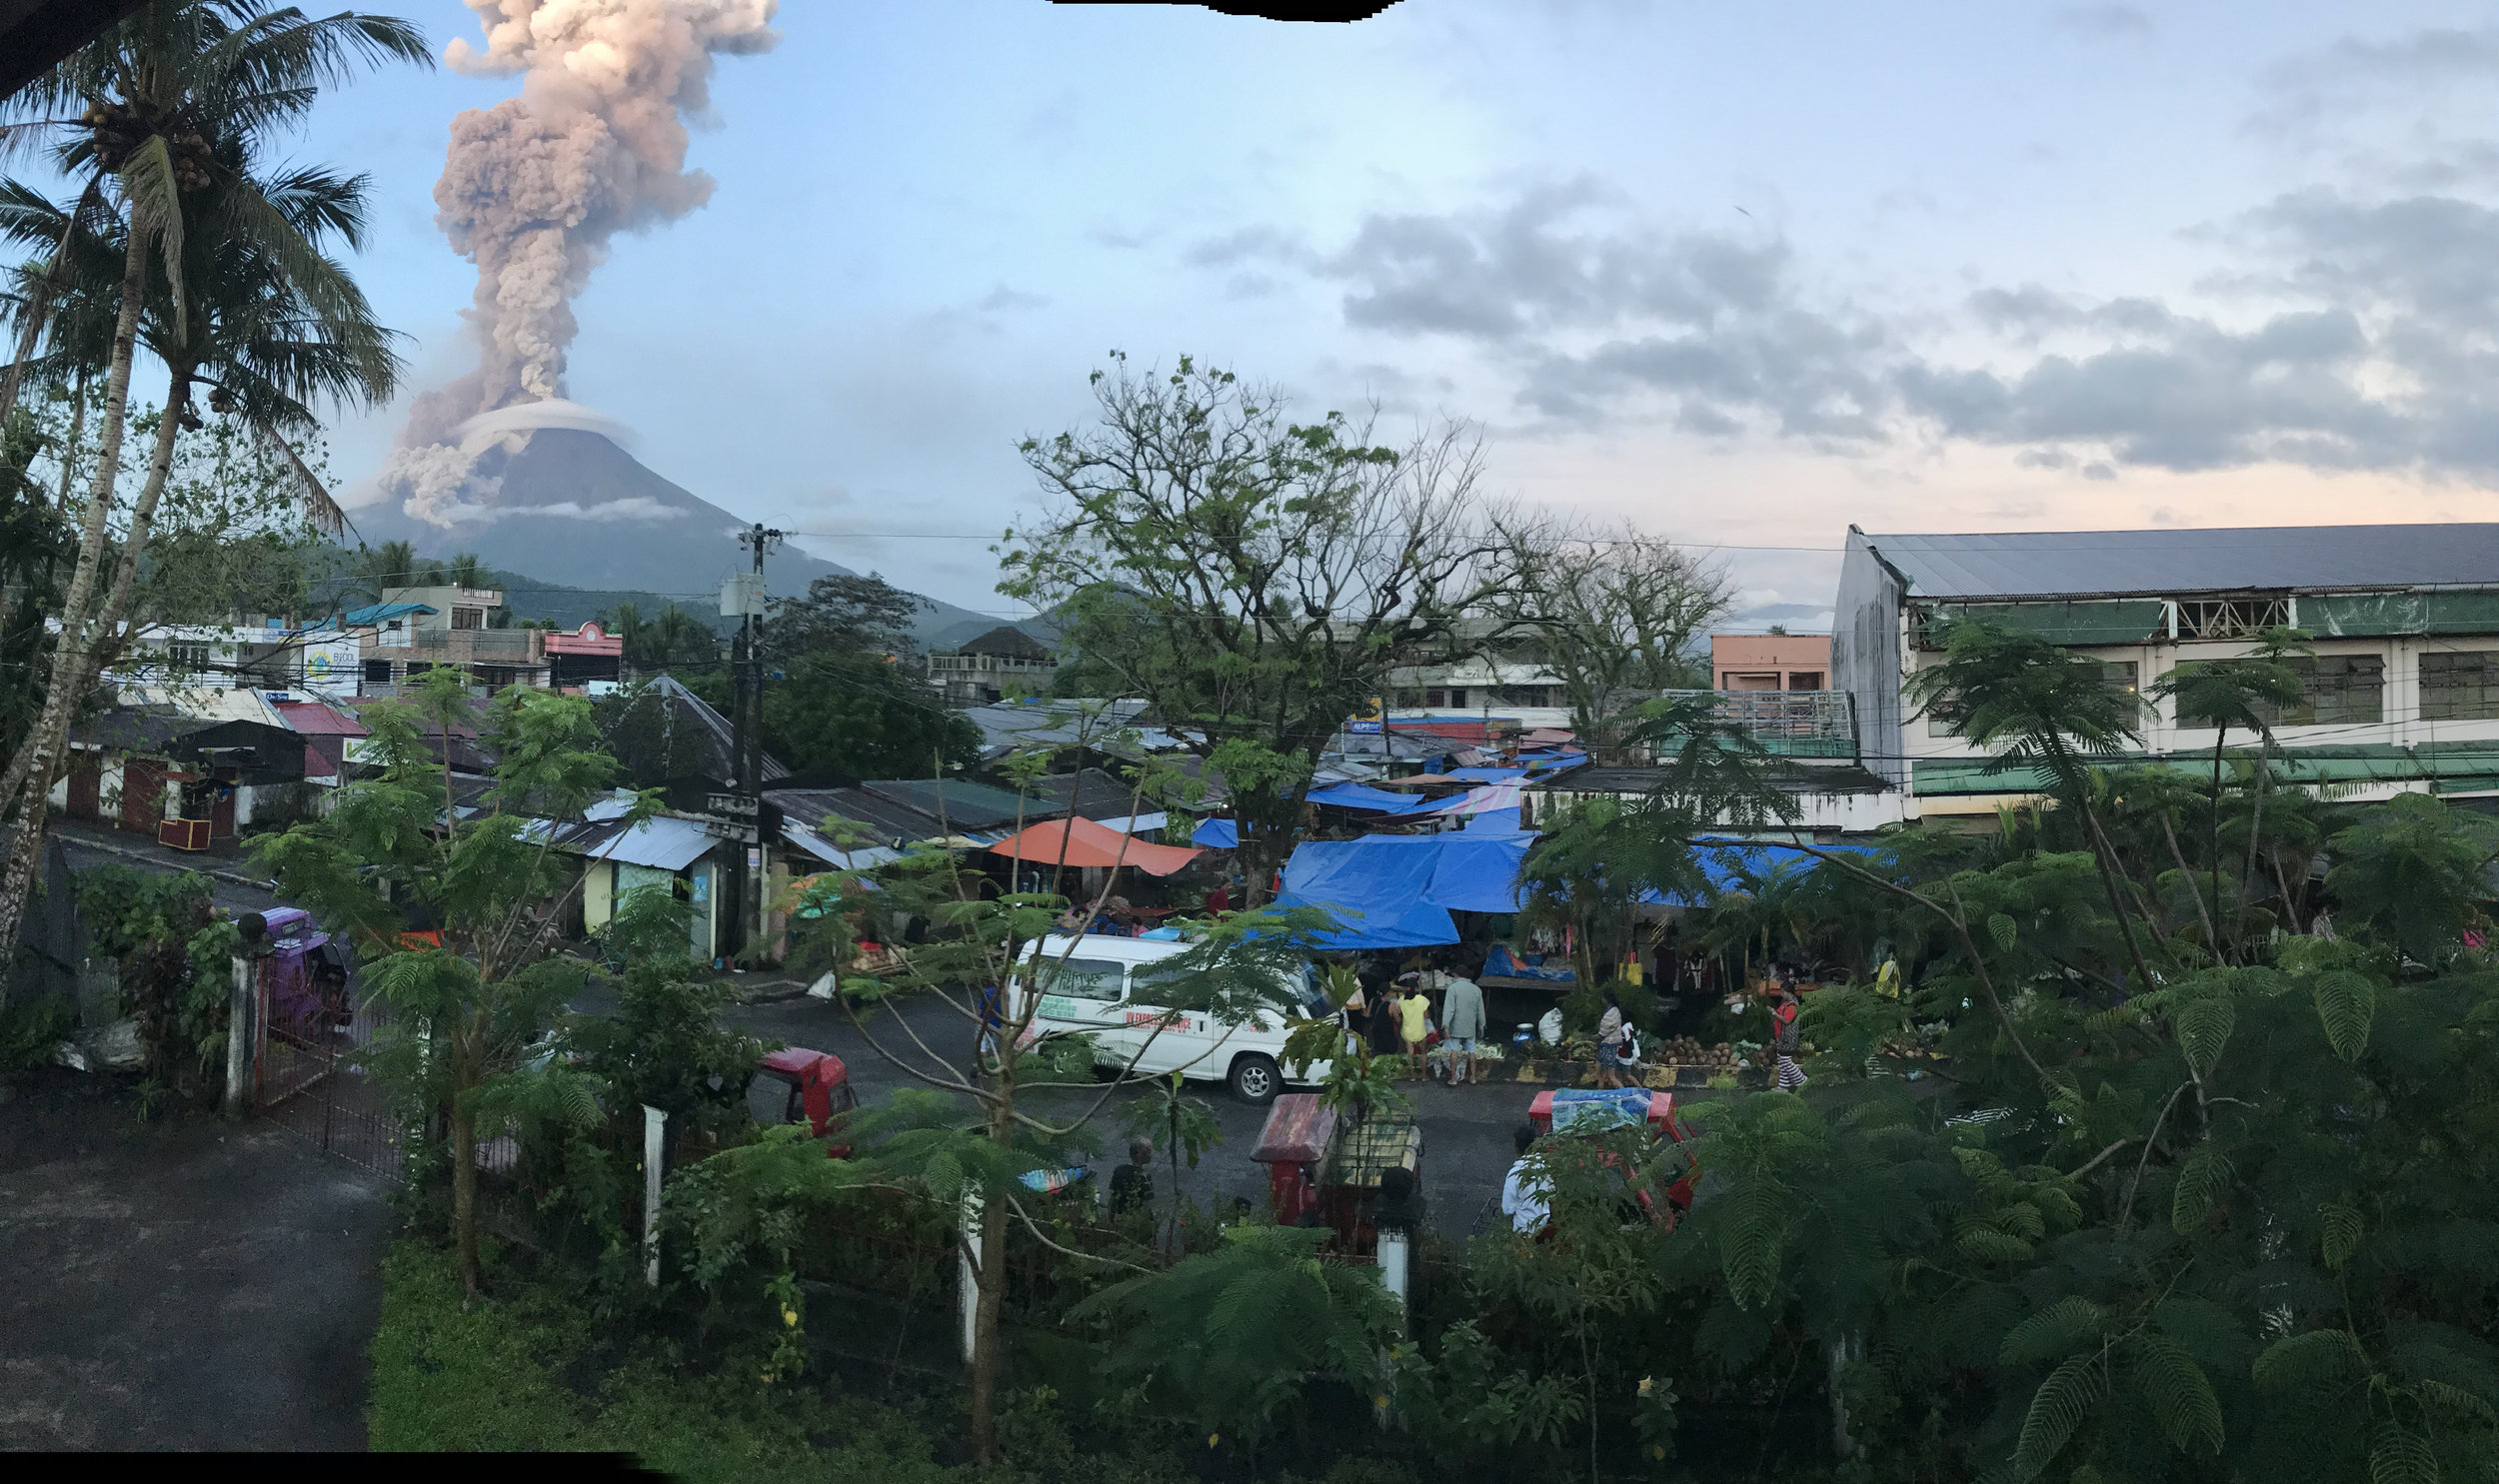 Over 56,000 people are forced to flee amidst Mayon Volcano eruption in Albay, Philippines.